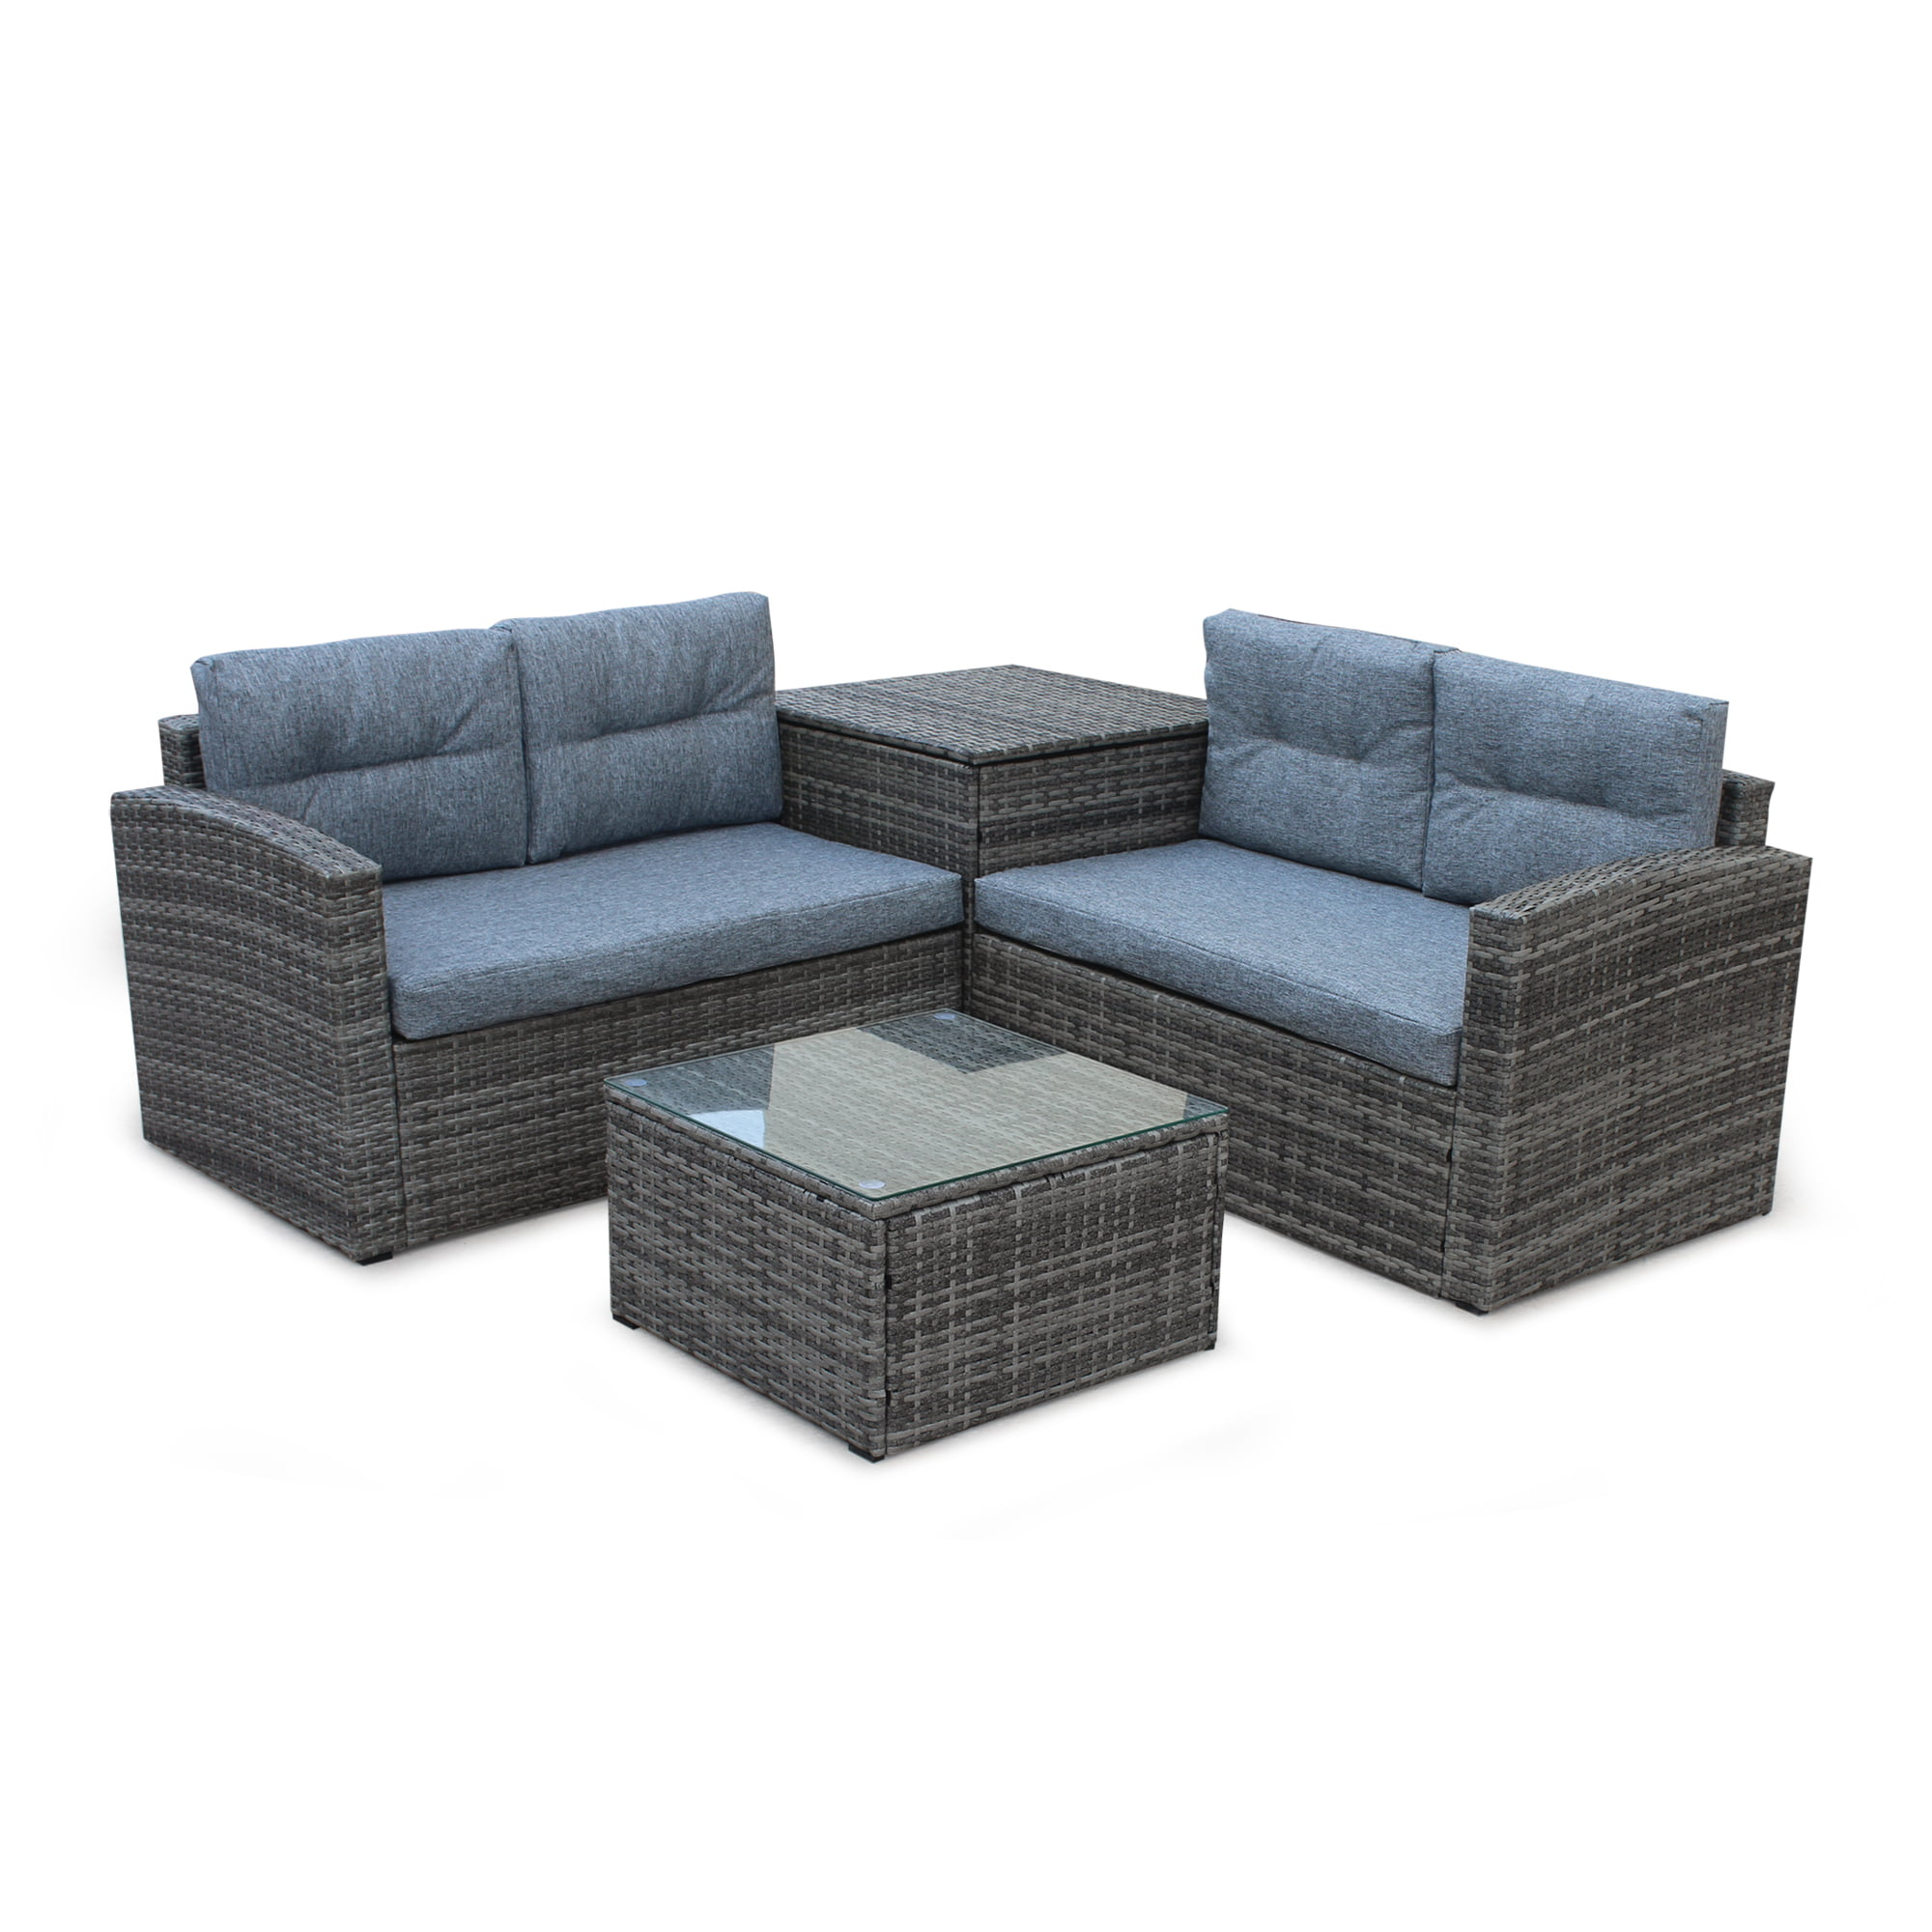 4 piece outdoor furniture wicker patio garden dining sets patio furniture rattan furniture sets